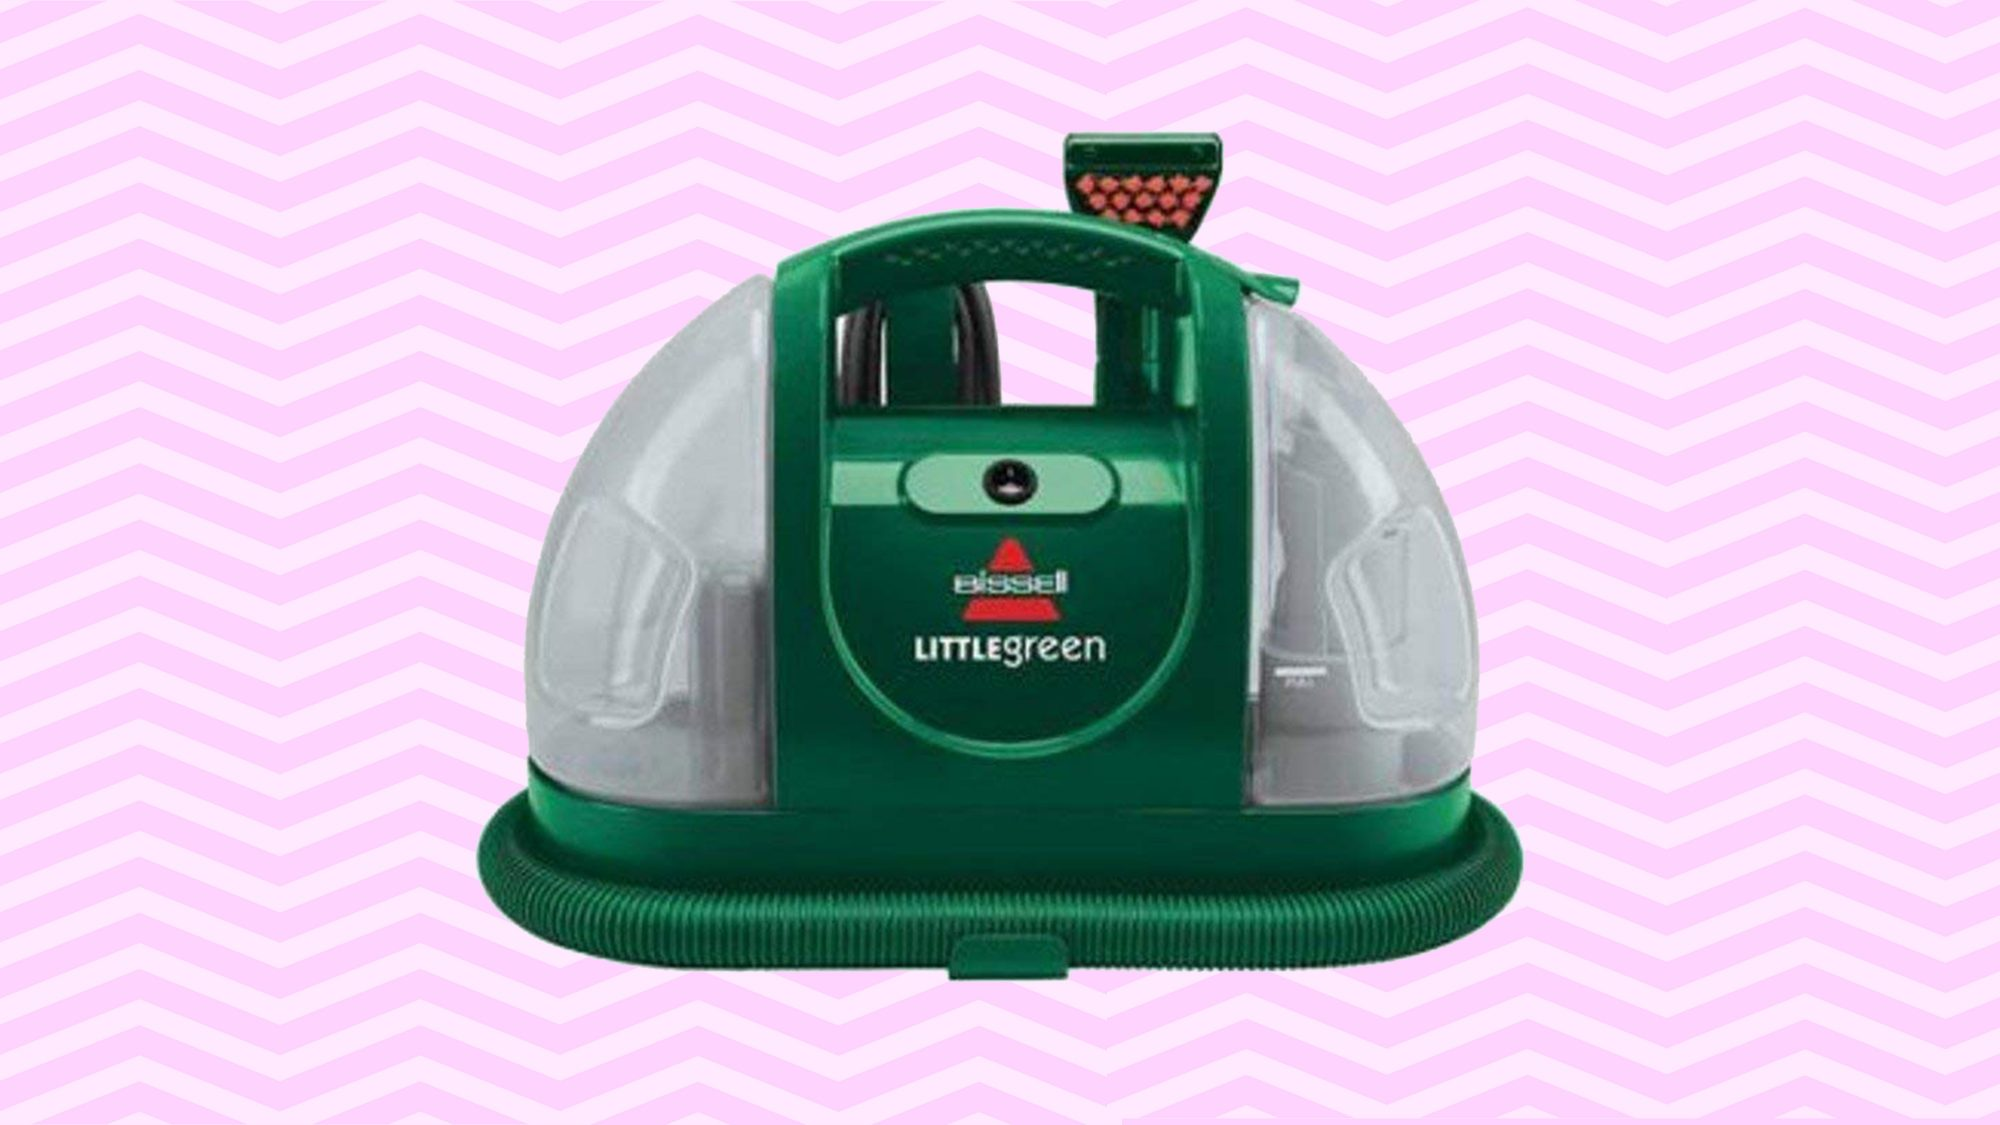 BissellI Little Green Portable Spot and Stain Cleaner Tout